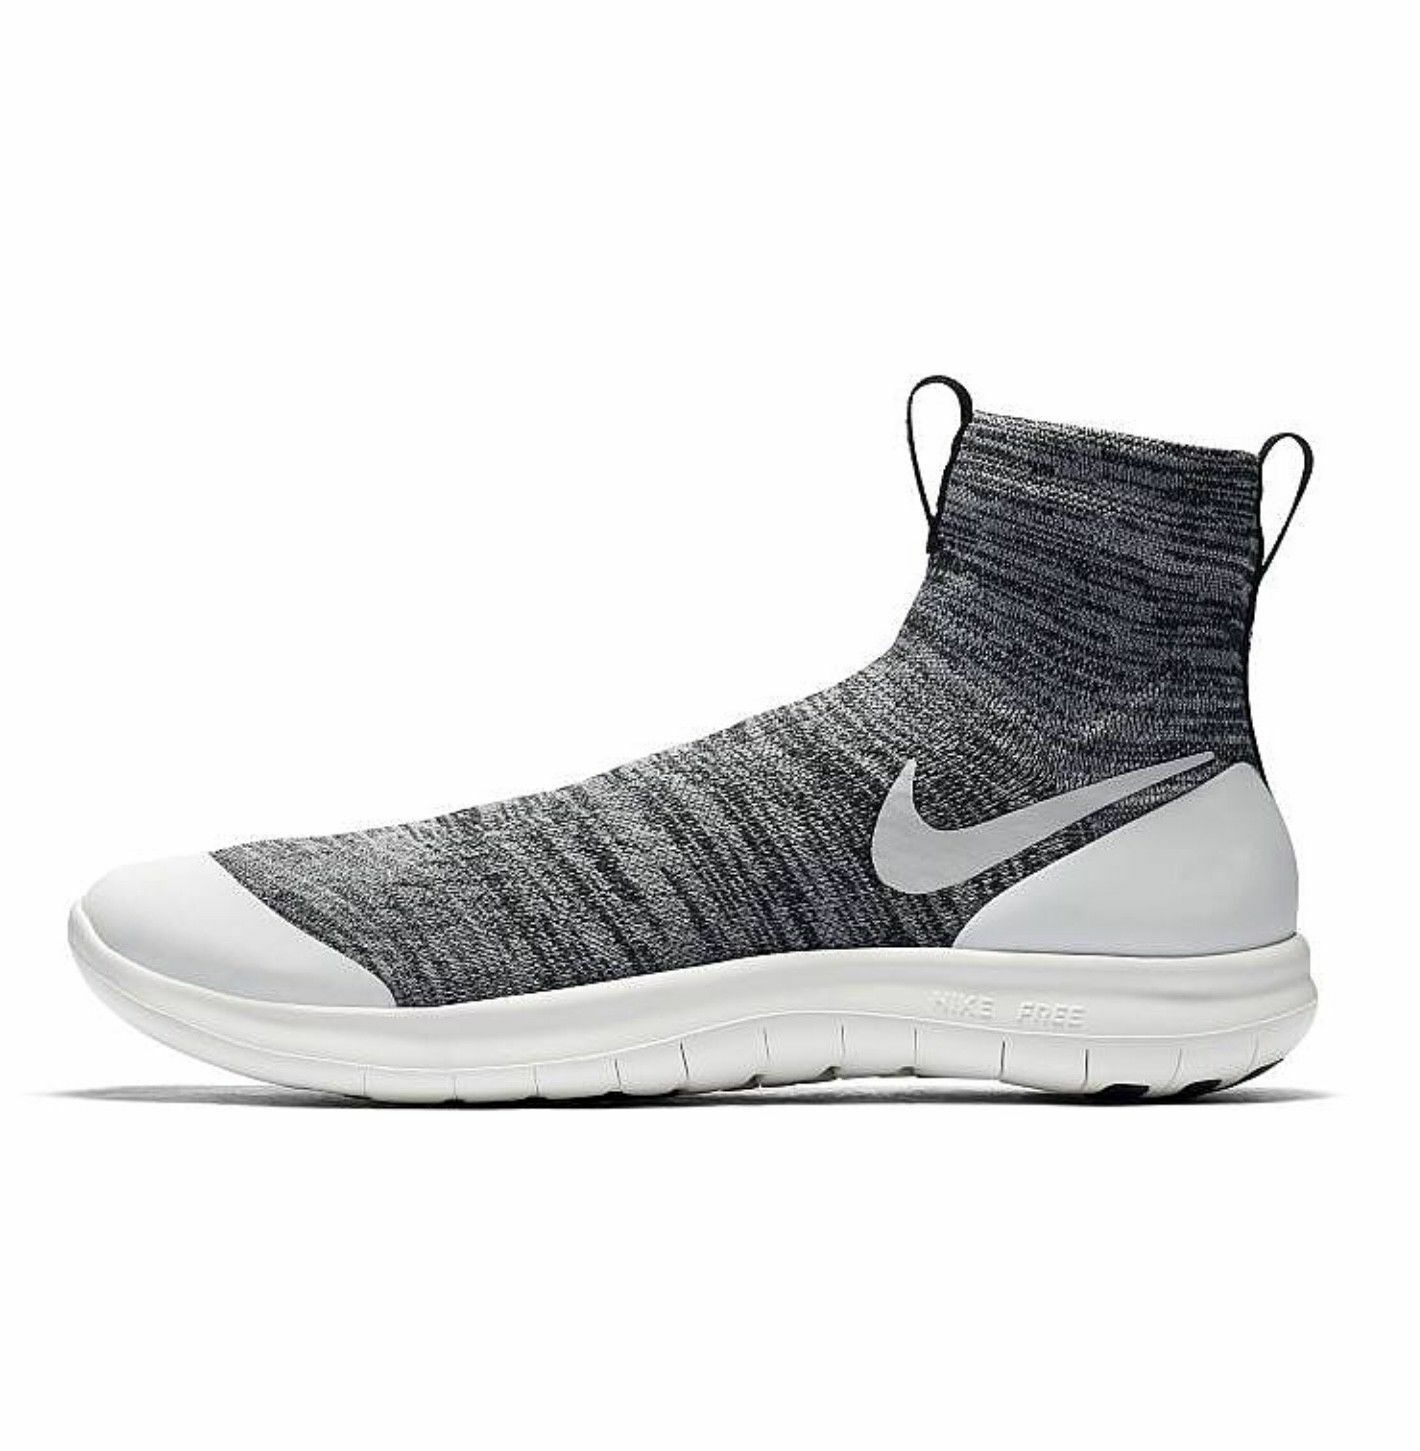 Nike Veil Gyakusou FlyKnit Running Shoes Black/Sail AH2181 001 MSRP Price reduction New shoes for men and women, limited time discount